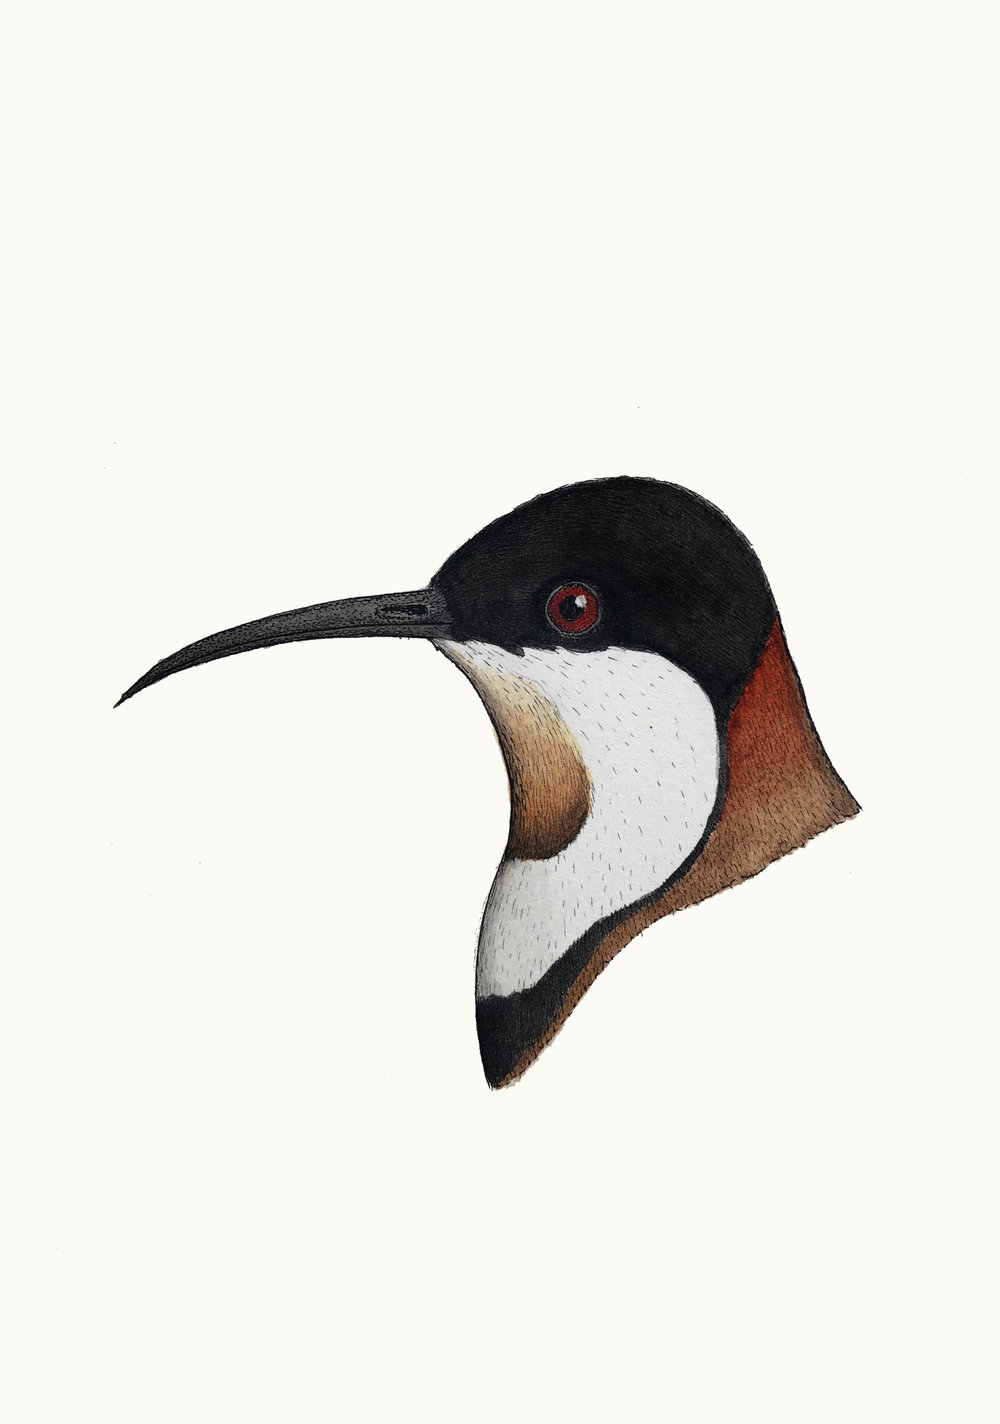 'Portrait of and Eastern Spinebill'